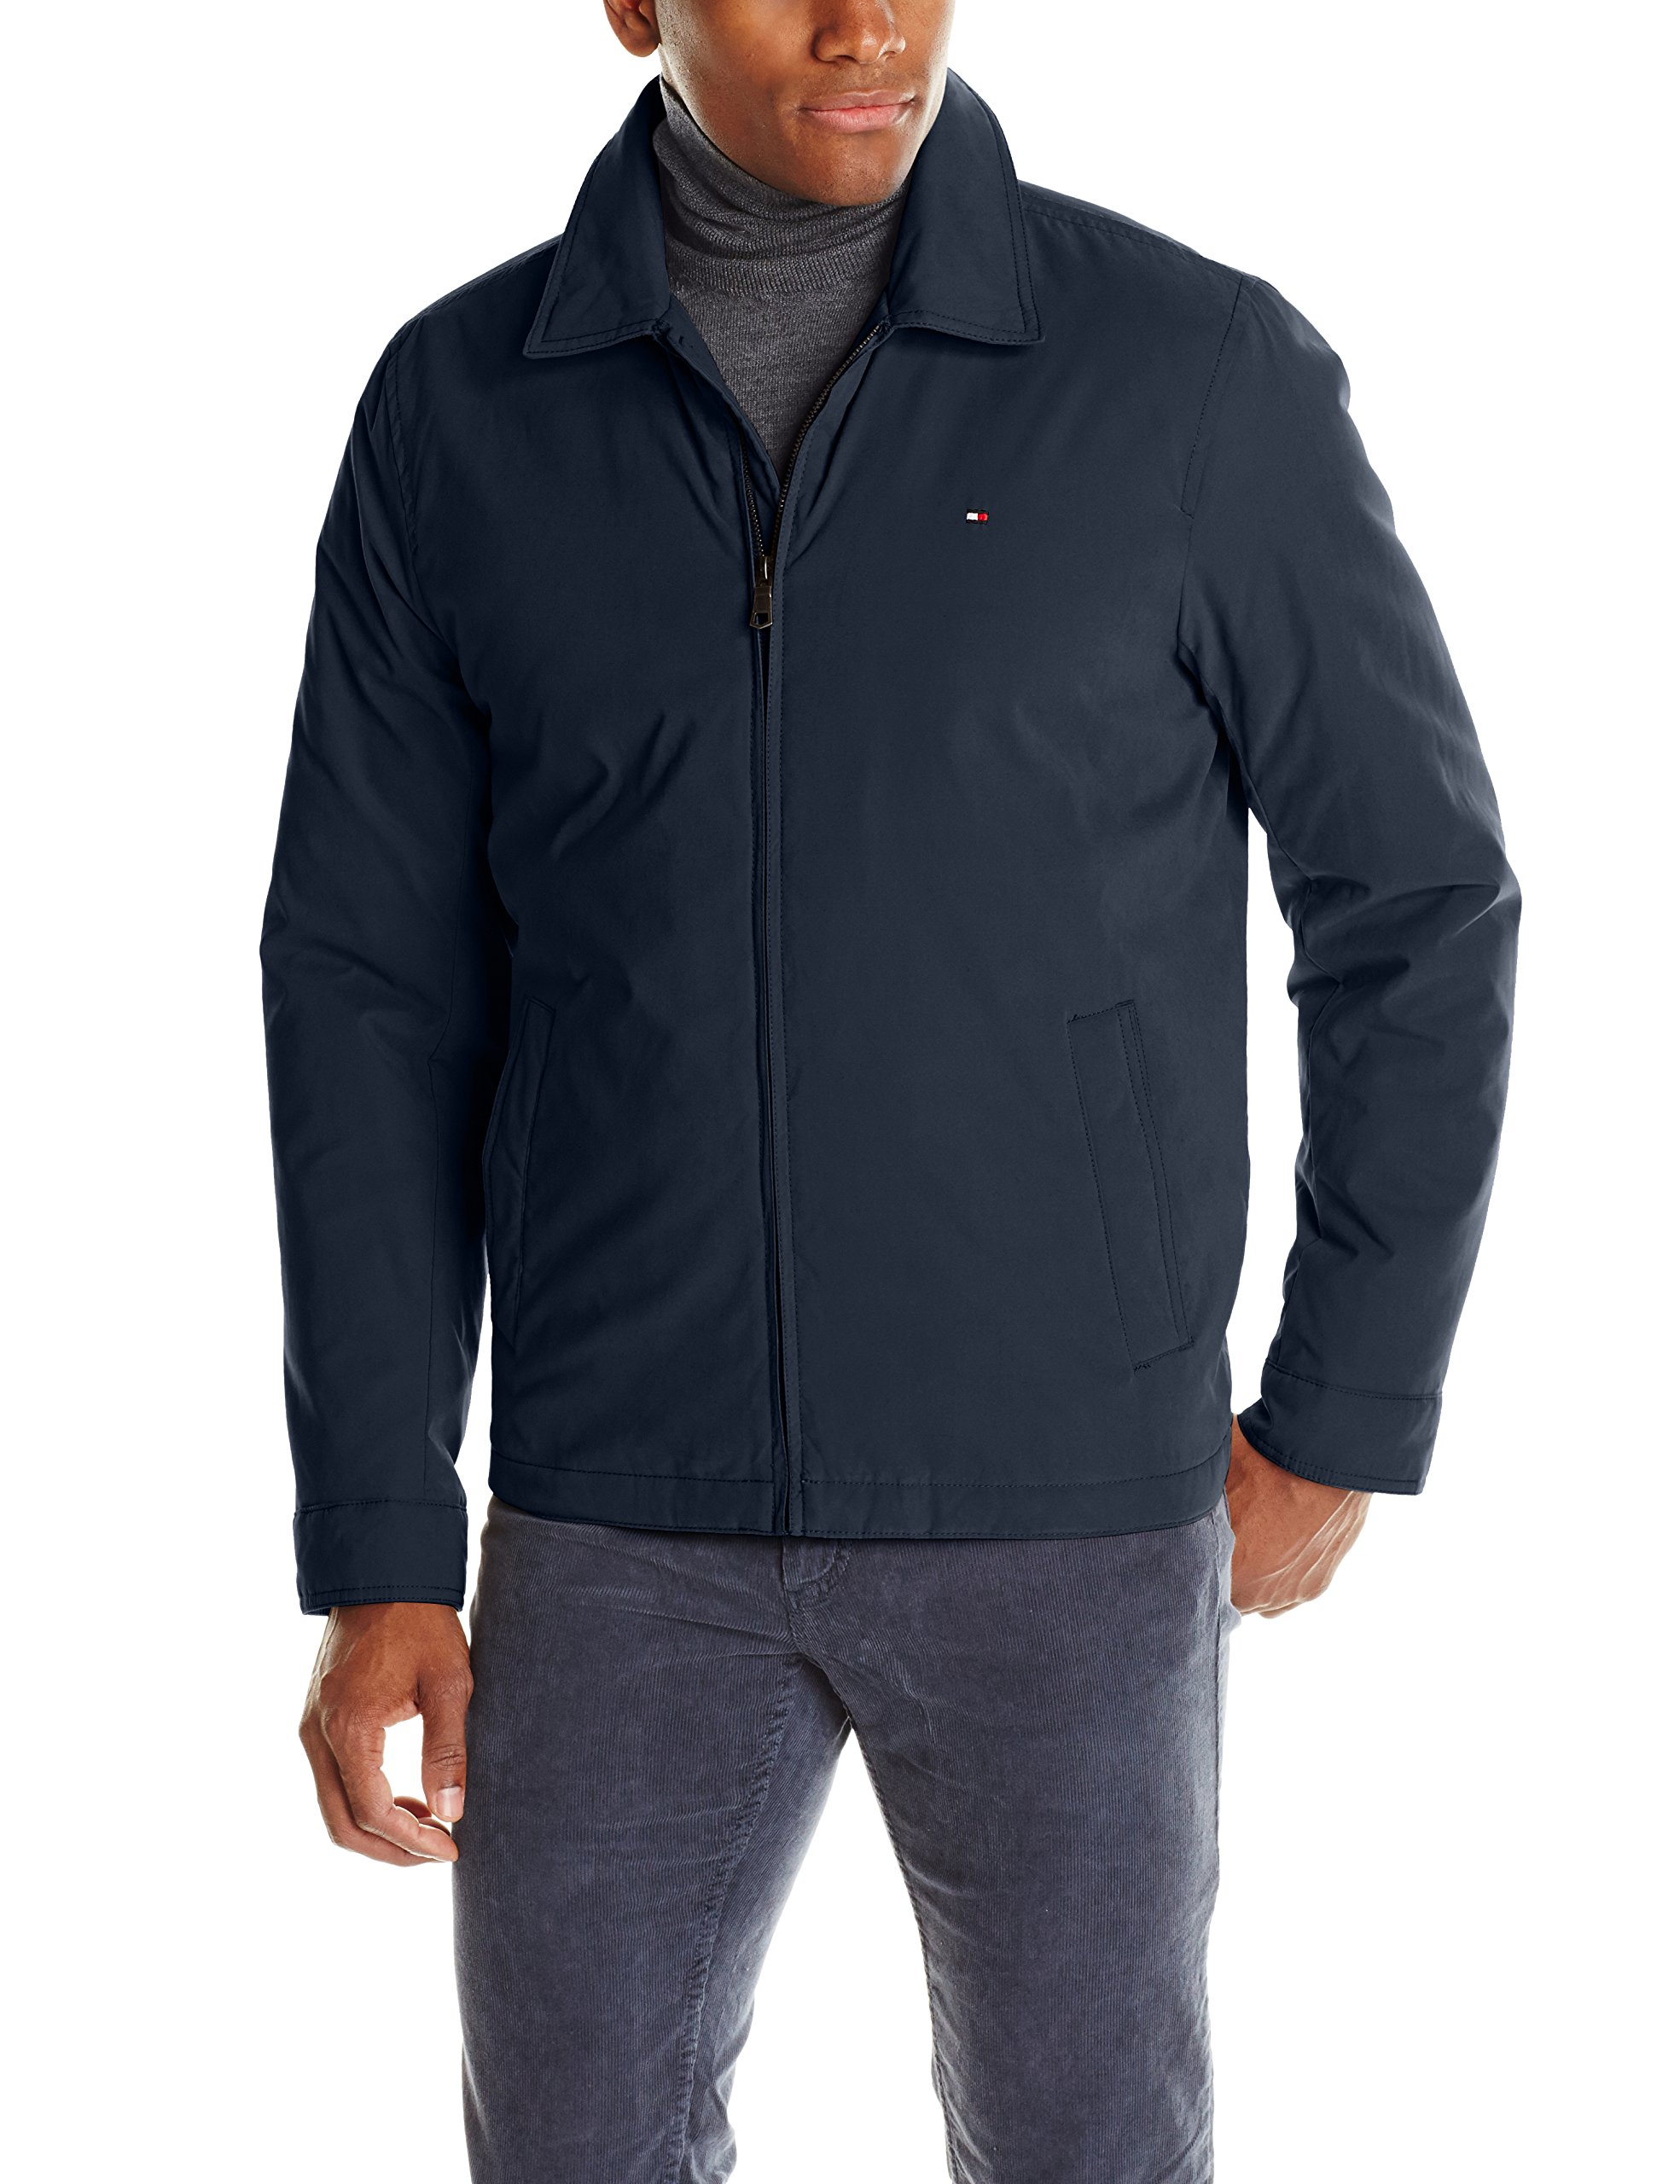 Tommy Hilfiger Men's Micro-Twill Open Bottom Zip Front Jacket, Navy, Large